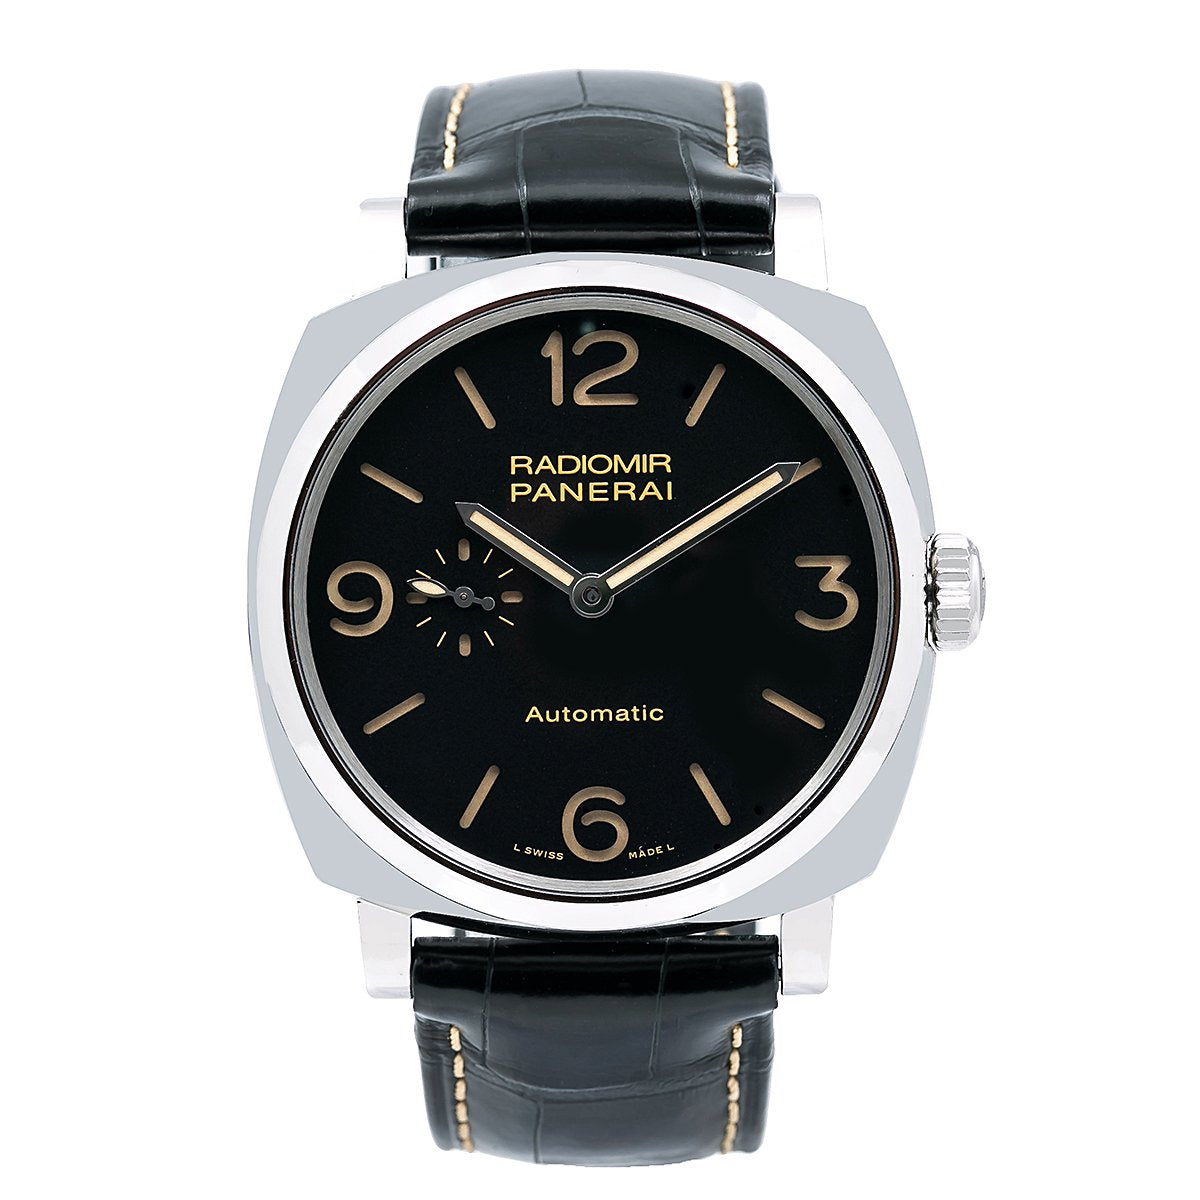 Panerai Radiomir 1940 3 Days Automatic PAM00572 45MM Black Dial With Crocodile Skin Bracelet